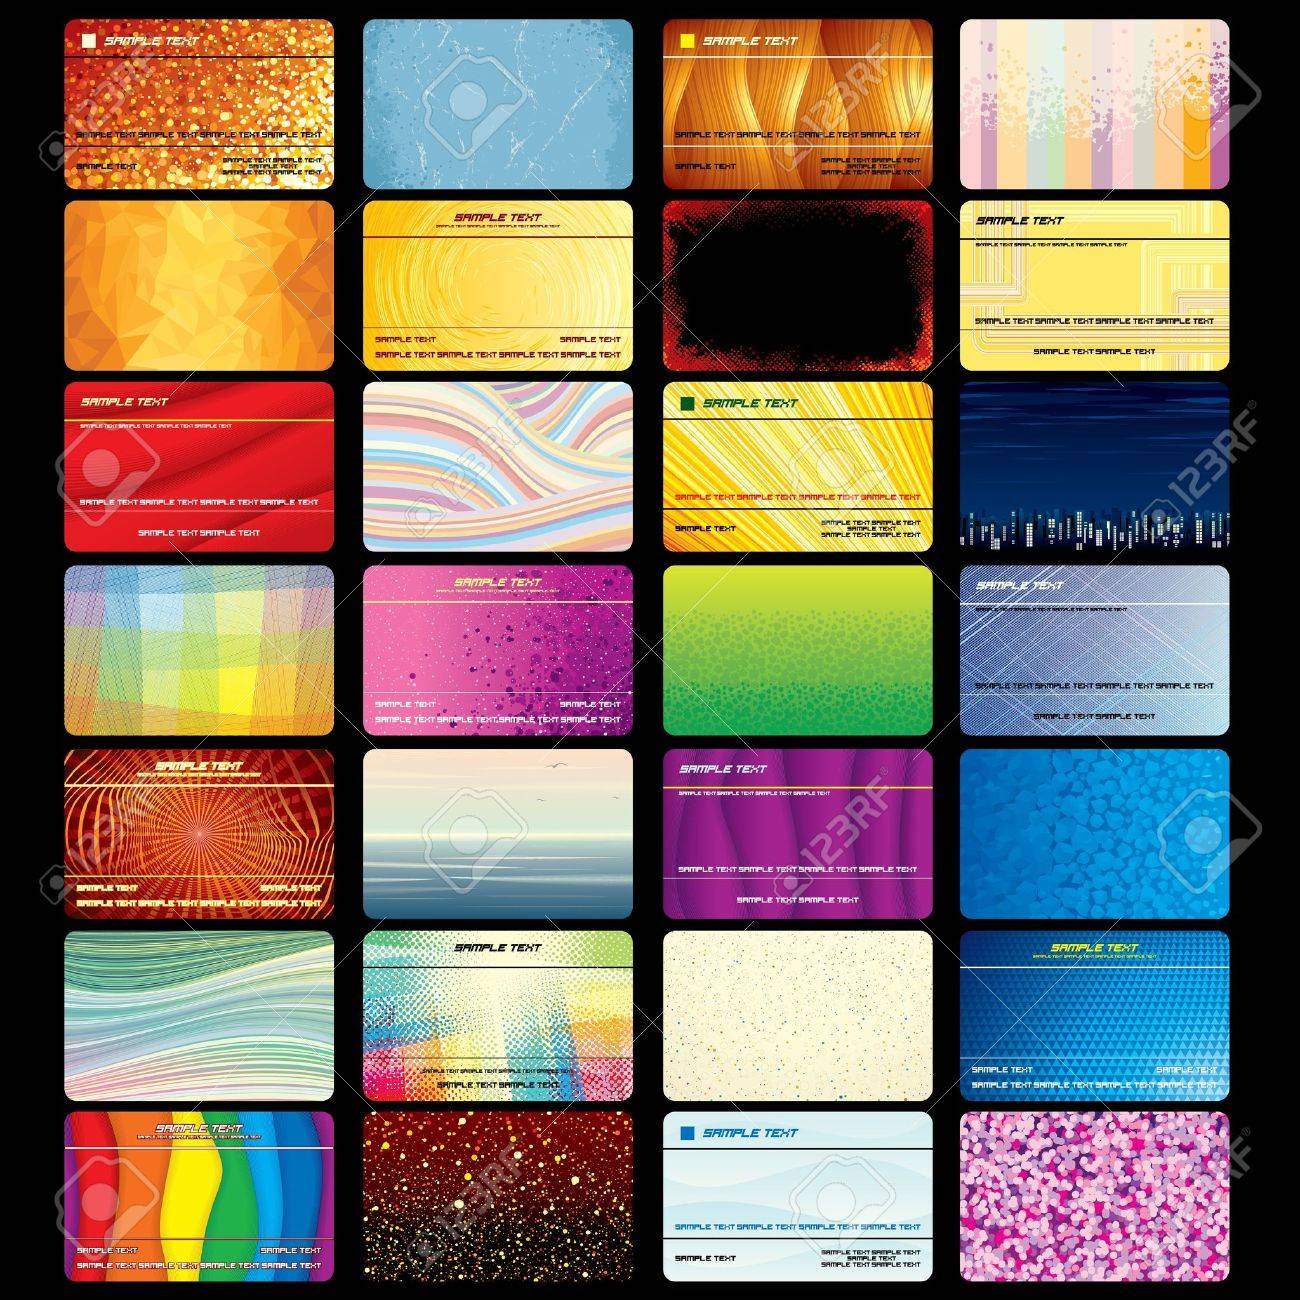 Various business card or credit card blank textured vector templates various business card or credit card blank textured vector templates for your company design and text flashek Choice Image